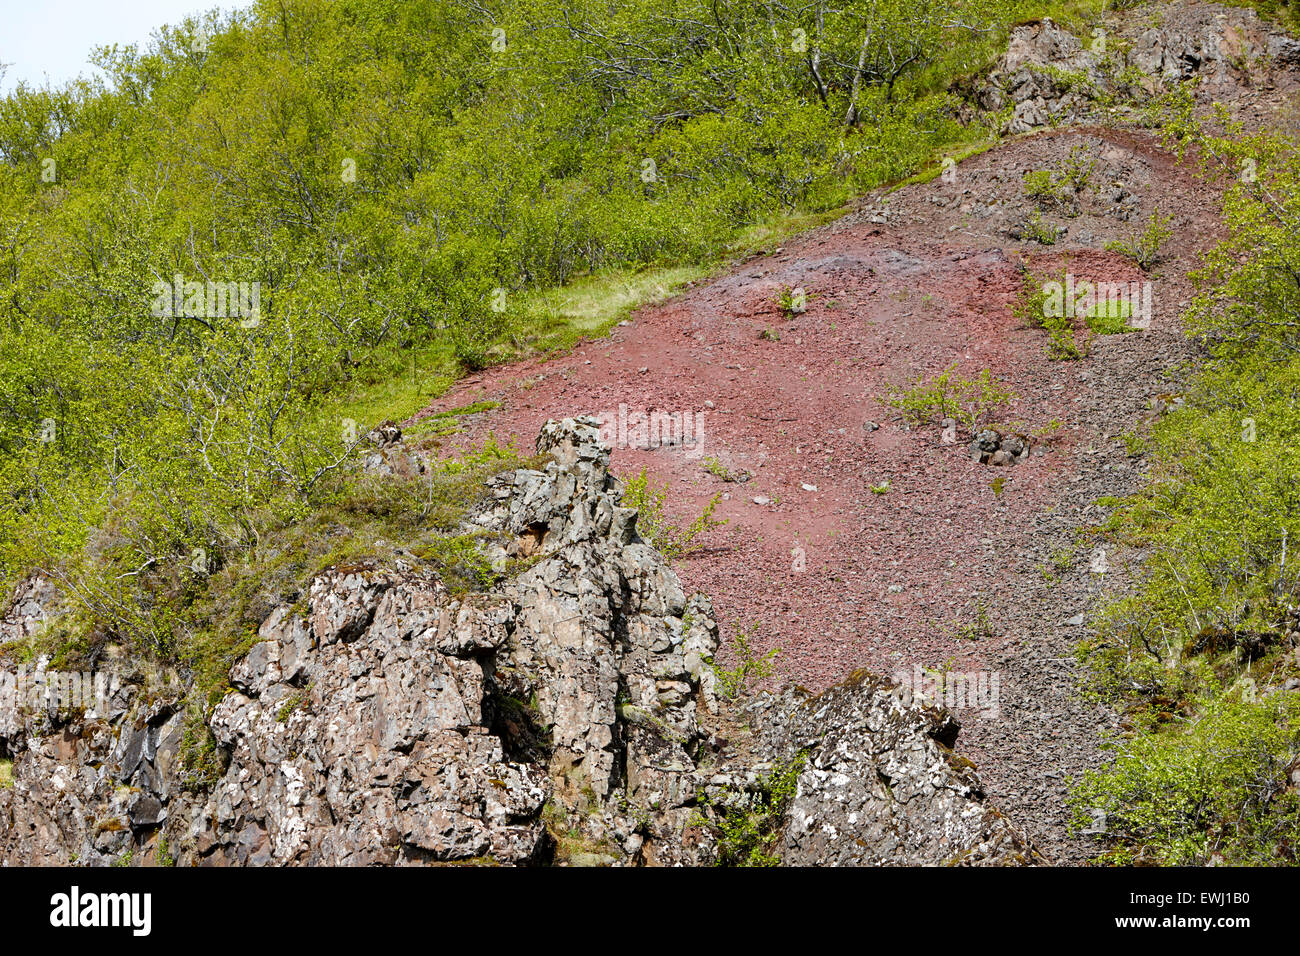 red stratum layer iron oxidisation soil Iceland - Stock Image